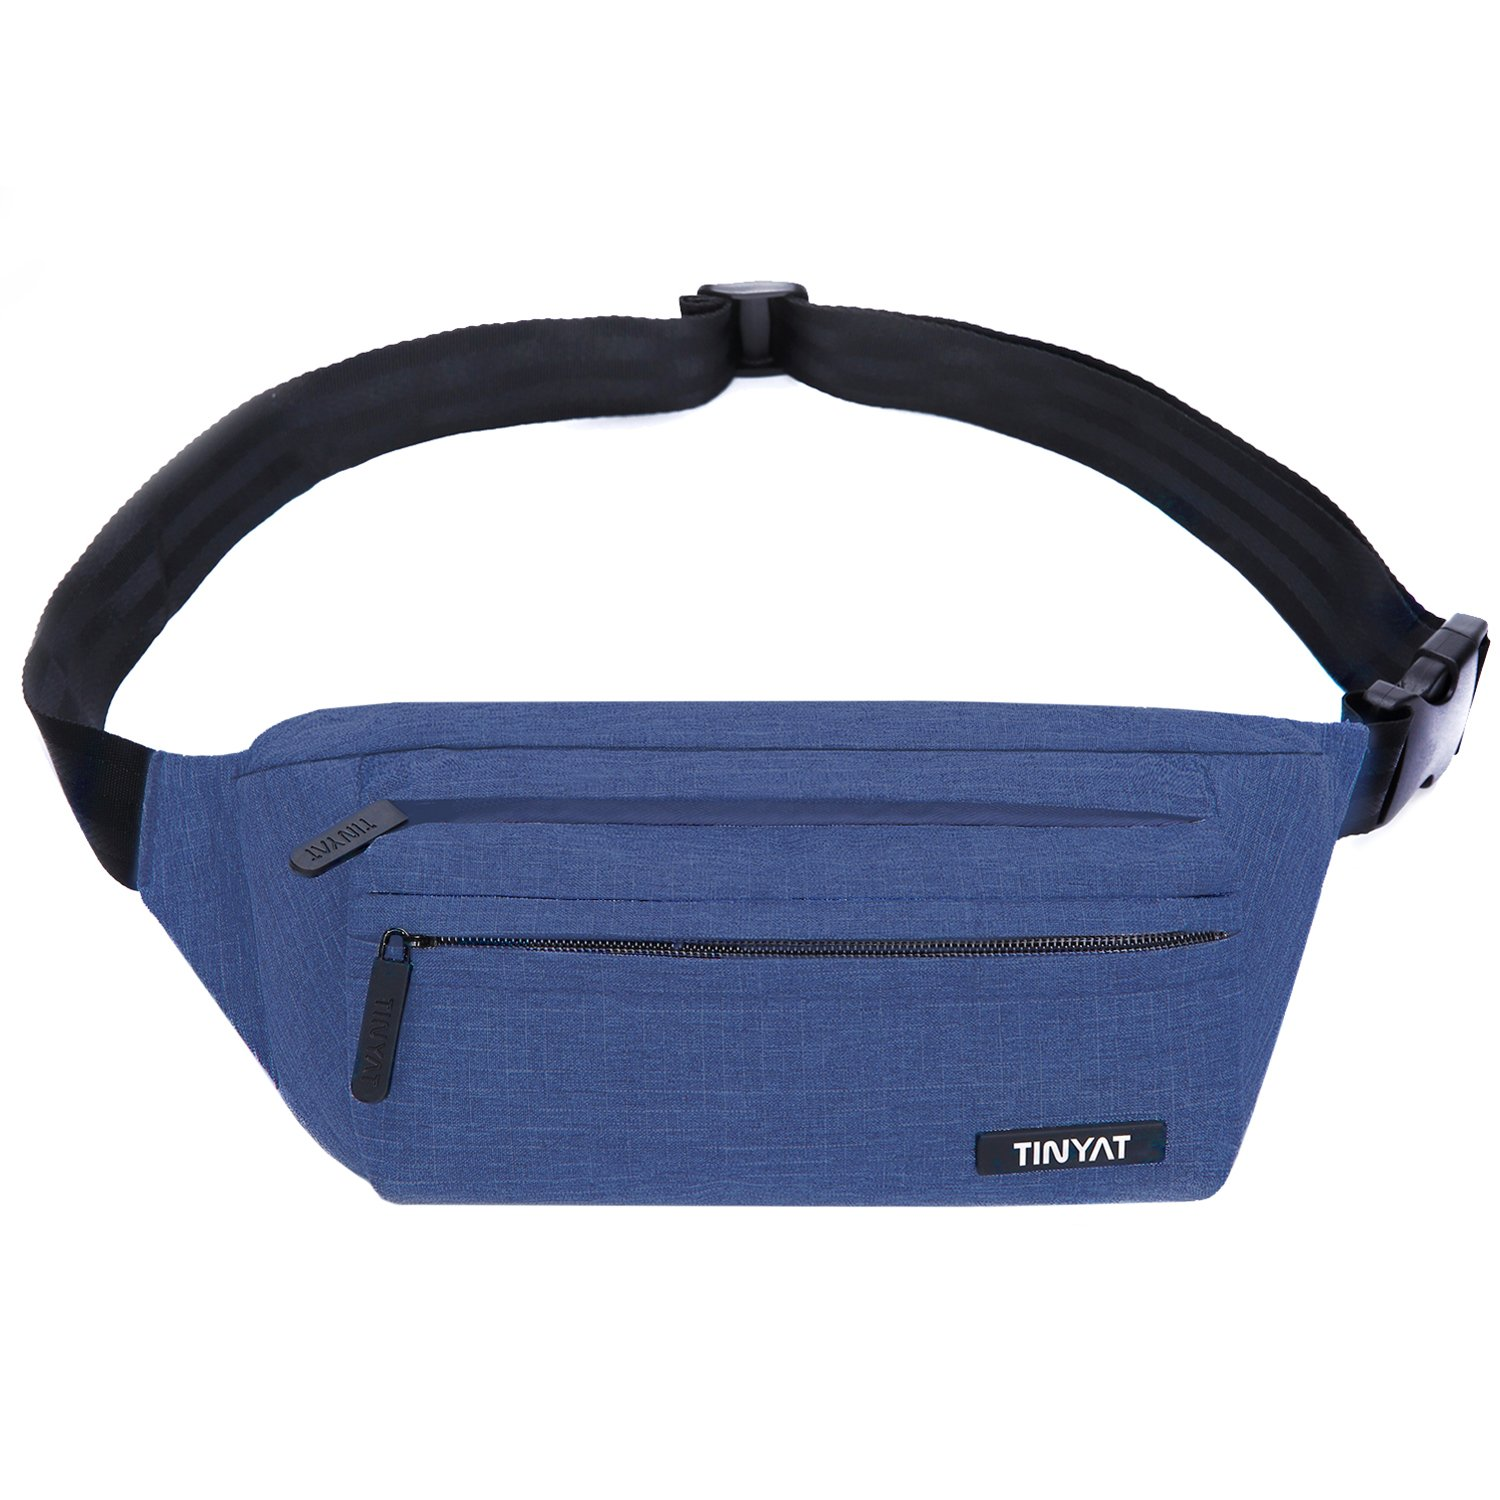 TINYAT Belt Bum Bag Travel Hiking Outdoor Sport Fanny Pack Waist Bag Holiday Money Hip Pouch T251